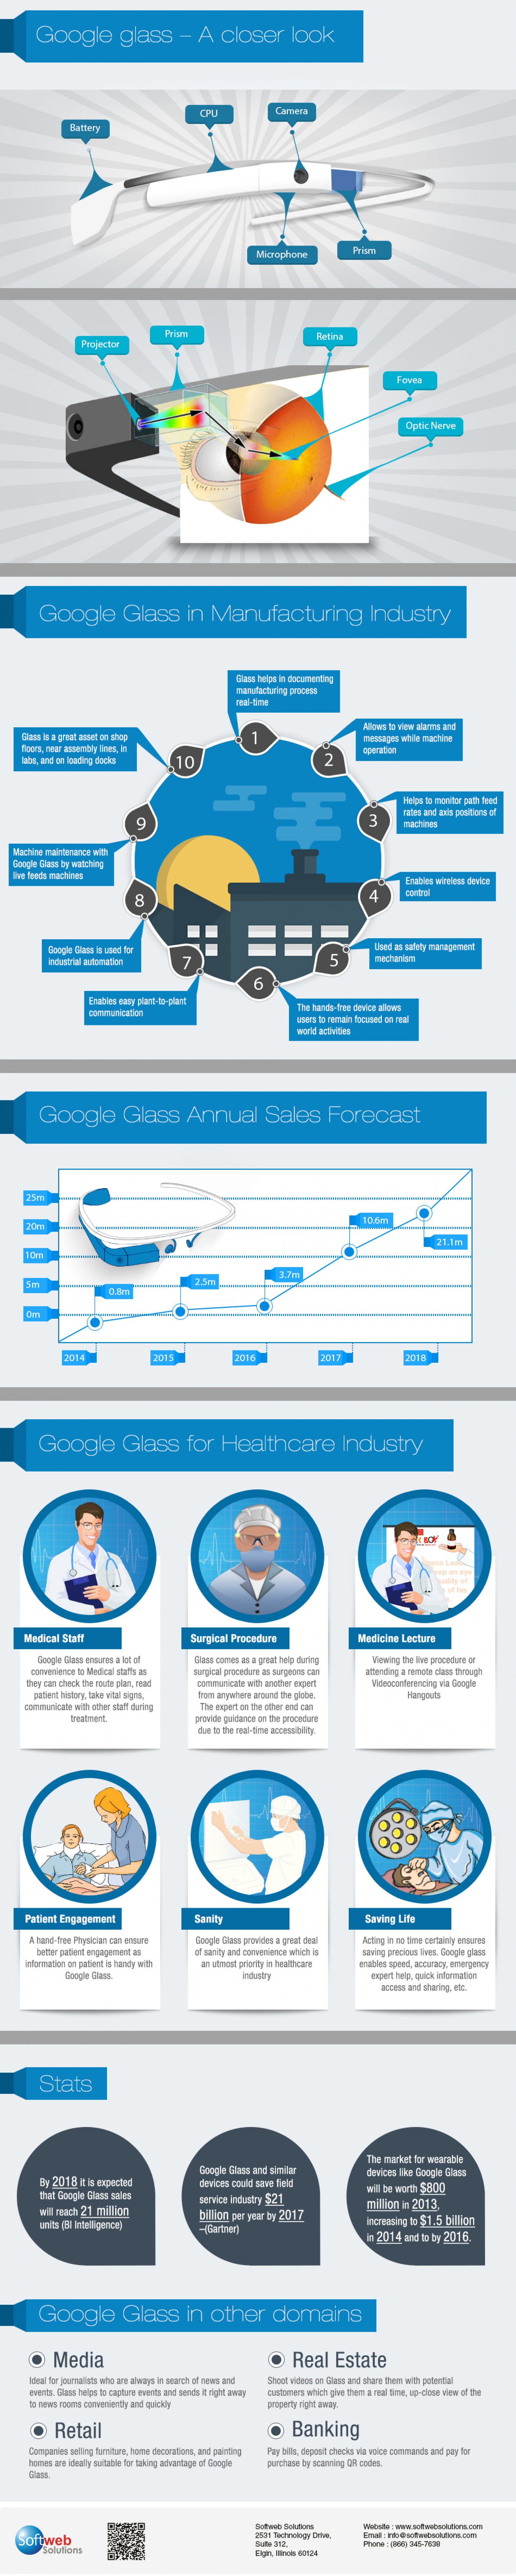 Google Glass - A Closer Look Infographic